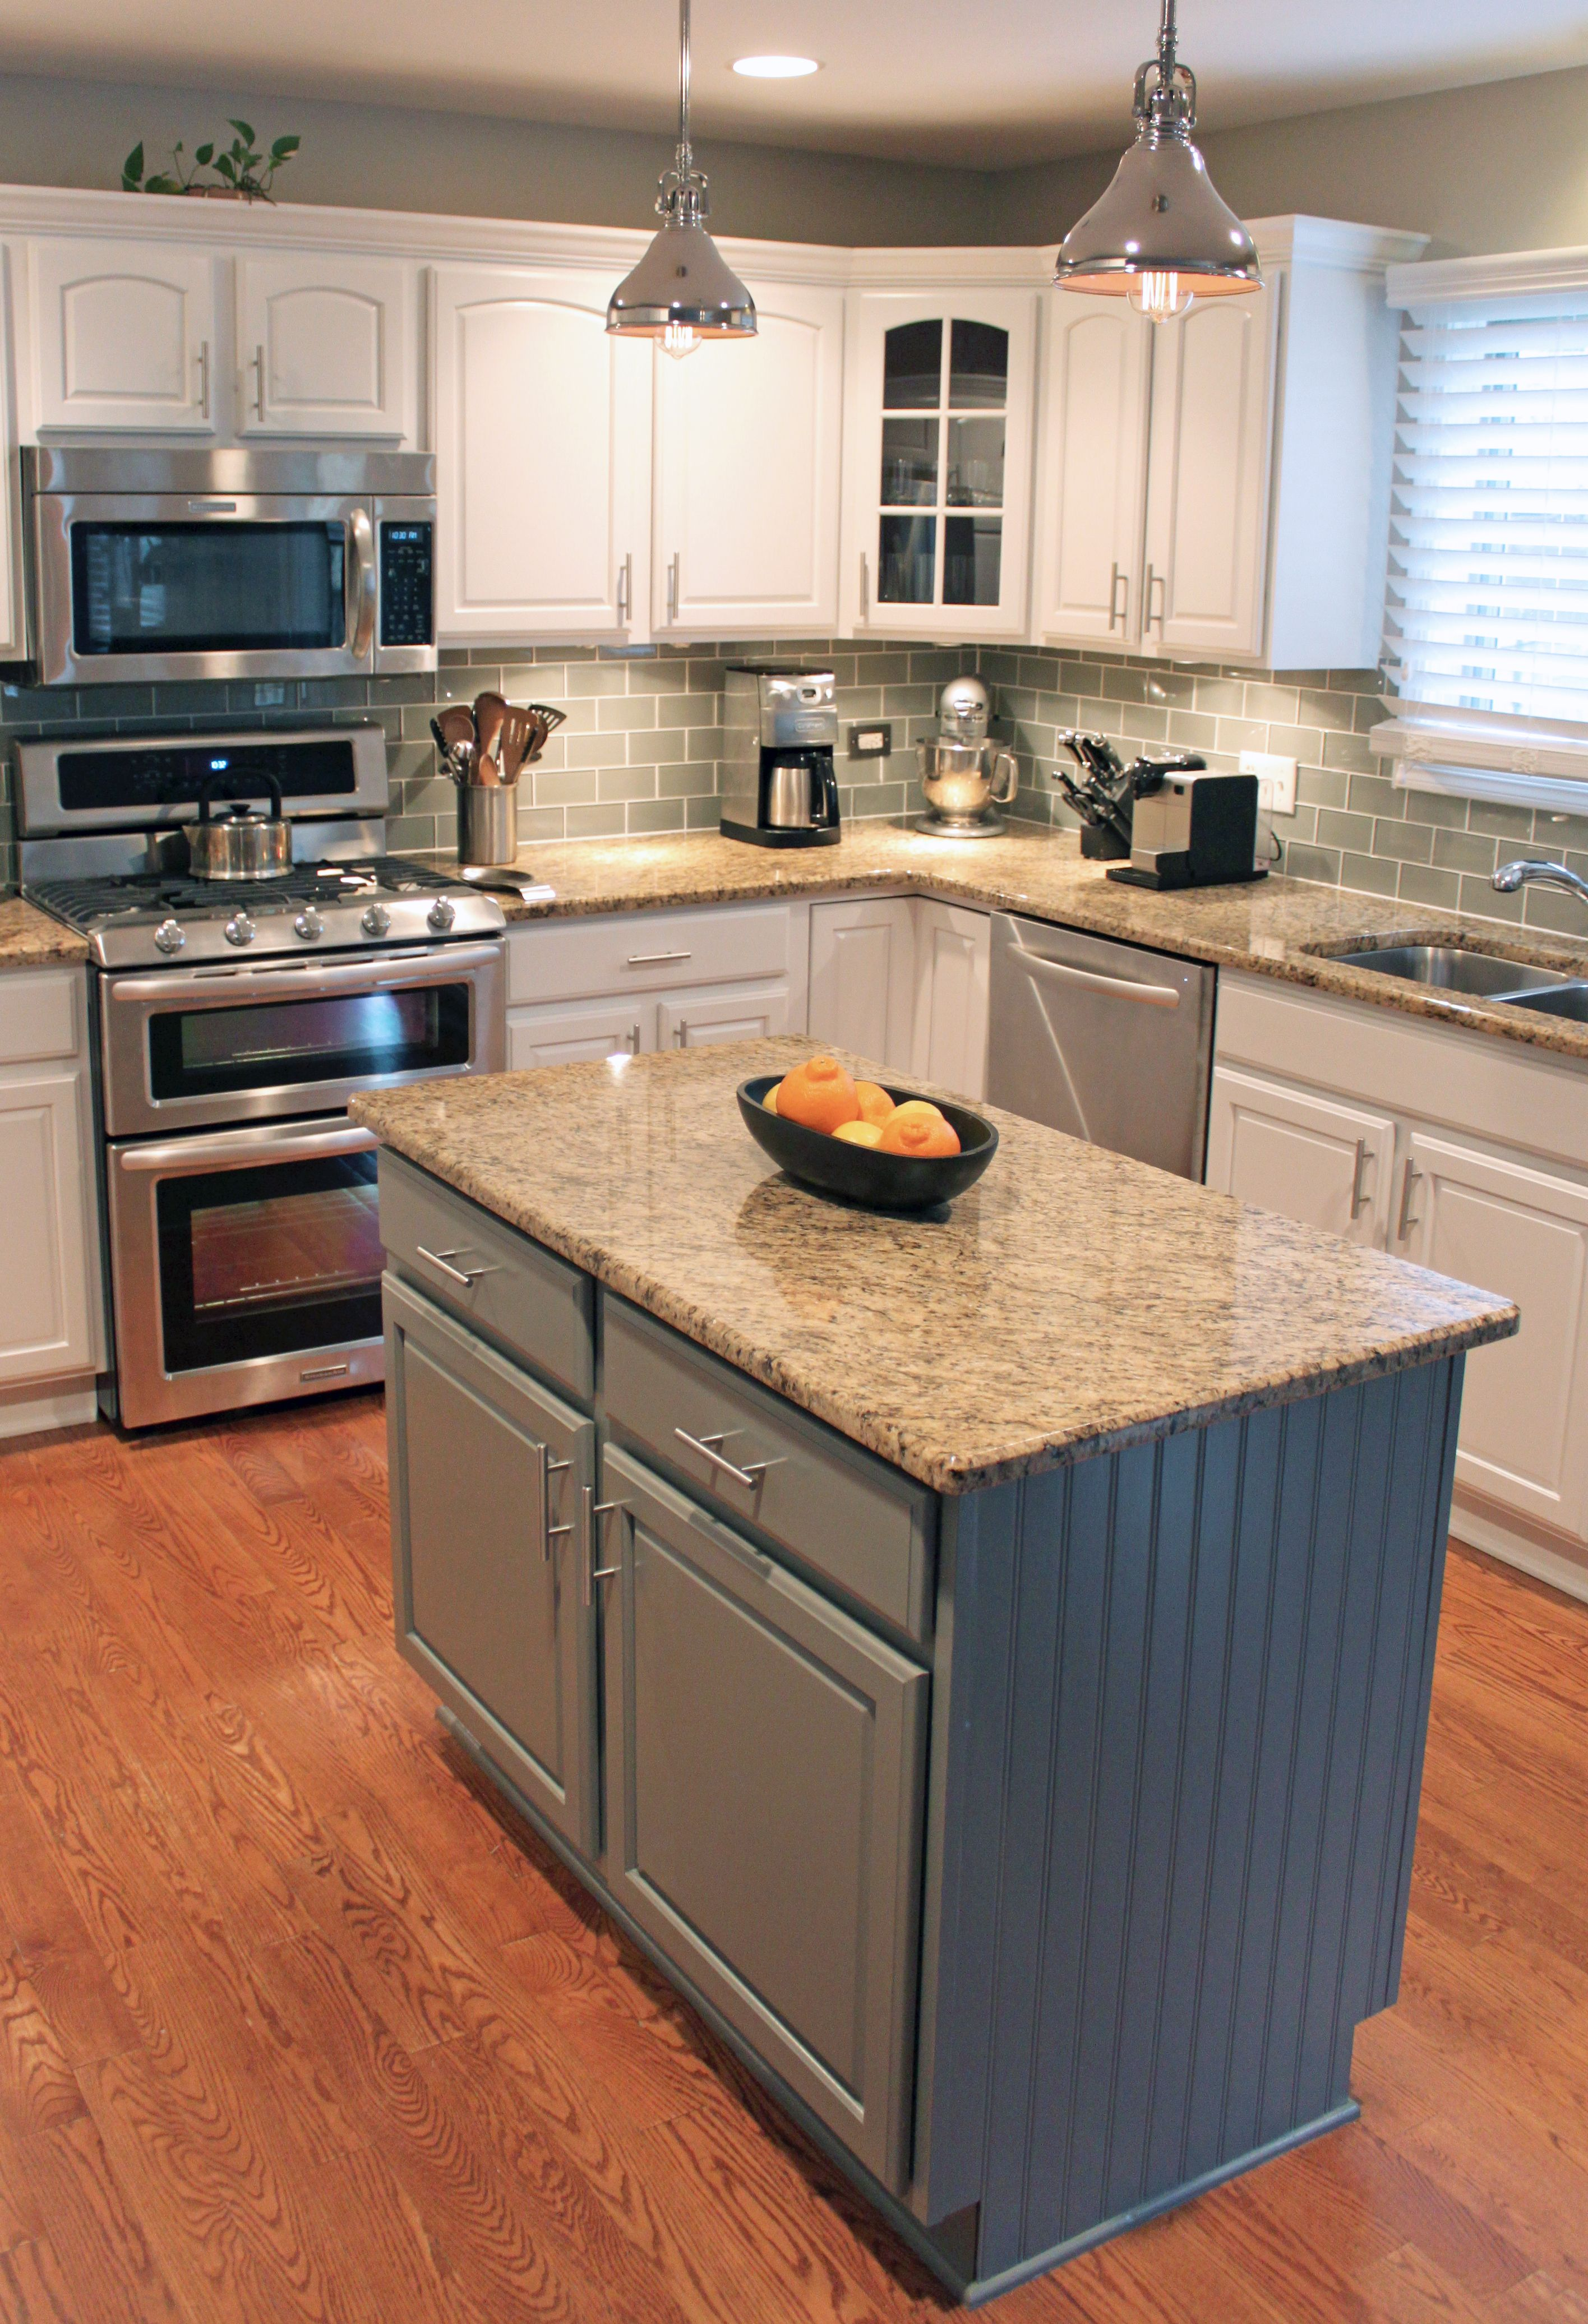 Kitchen remodel with painted cabinets and island new backsplash